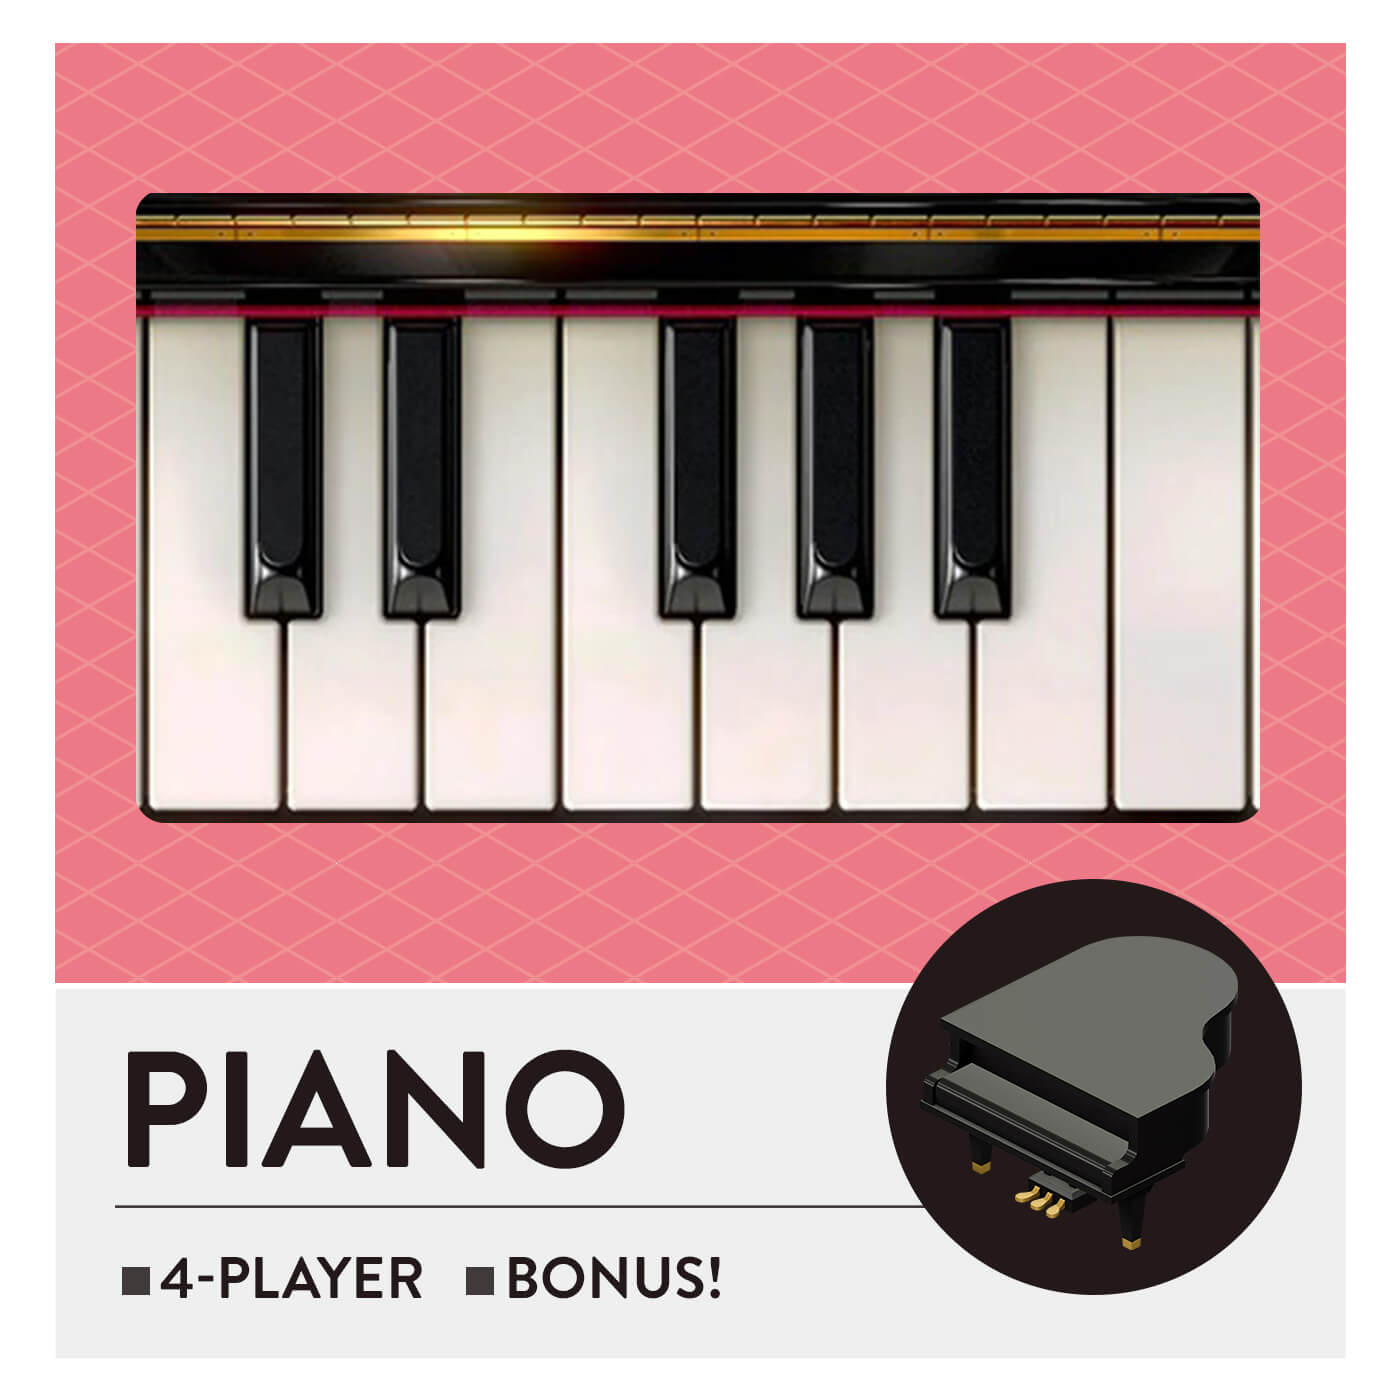 51 Worldwide Games - Piano